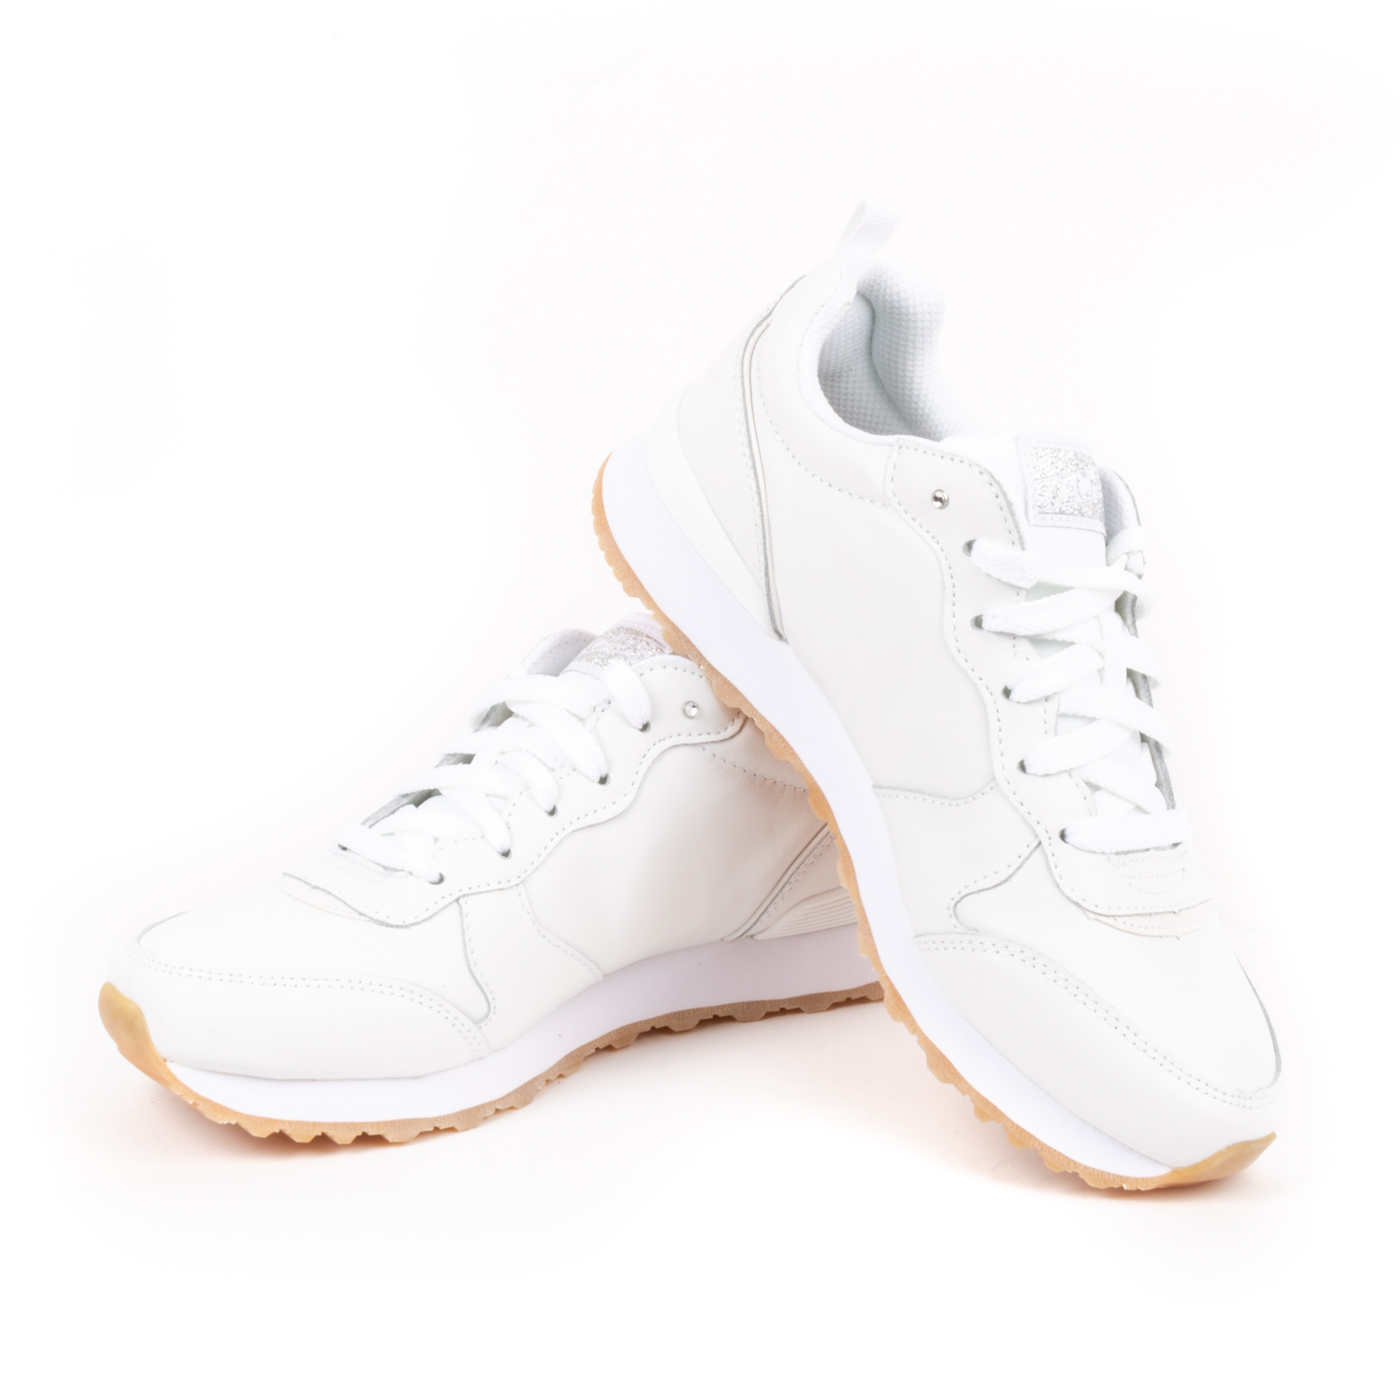 Skechers - Sneakers Donna stringate con brillantino e soletta in memory foam - Bianco